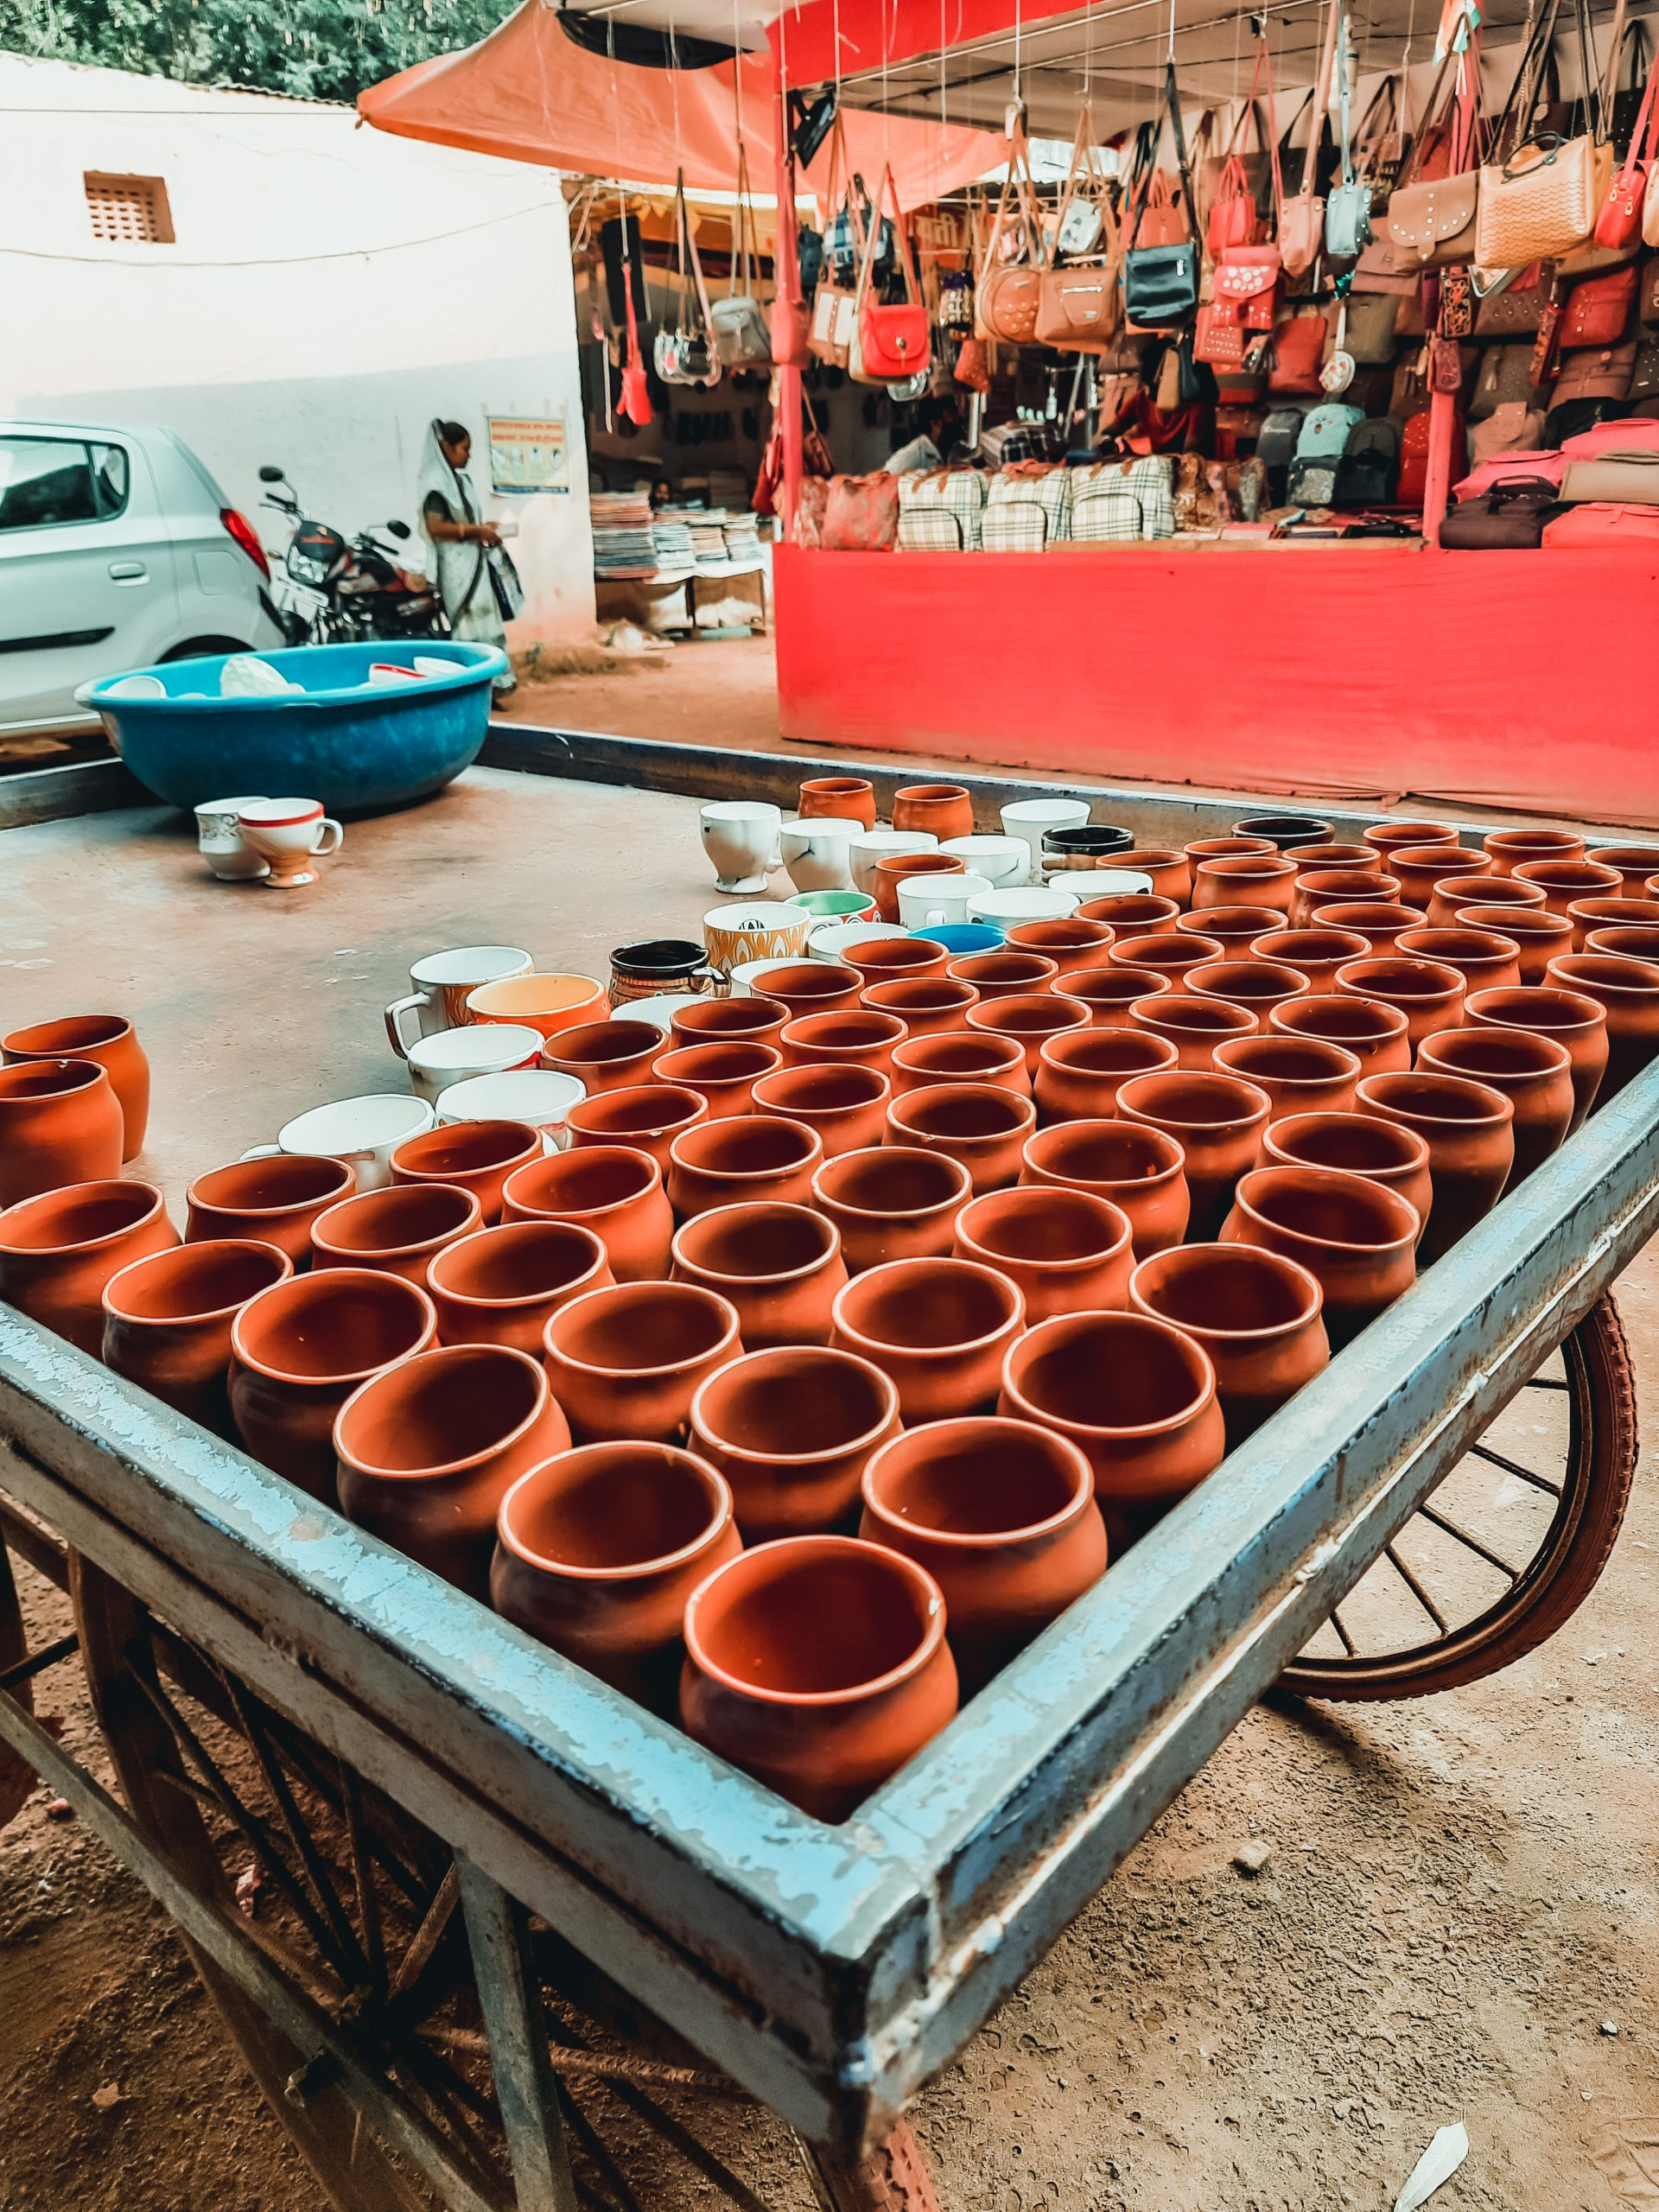 Clay pots on a cart